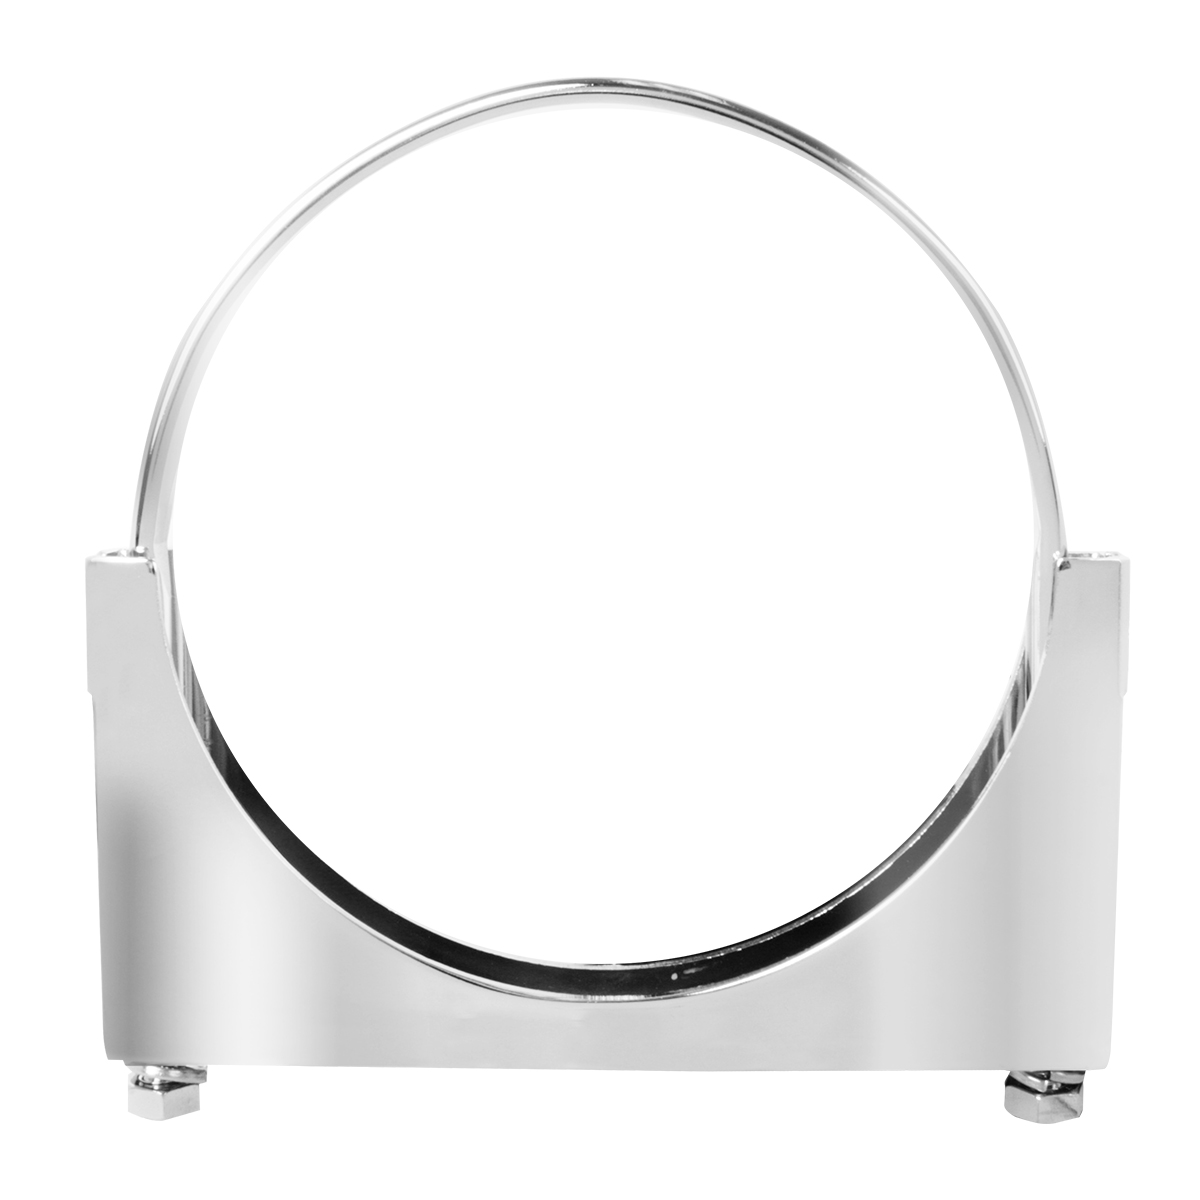 "#70490 Chrome Plated Steel 6"" Heavy Duty Exhaust Clamp Bracket"